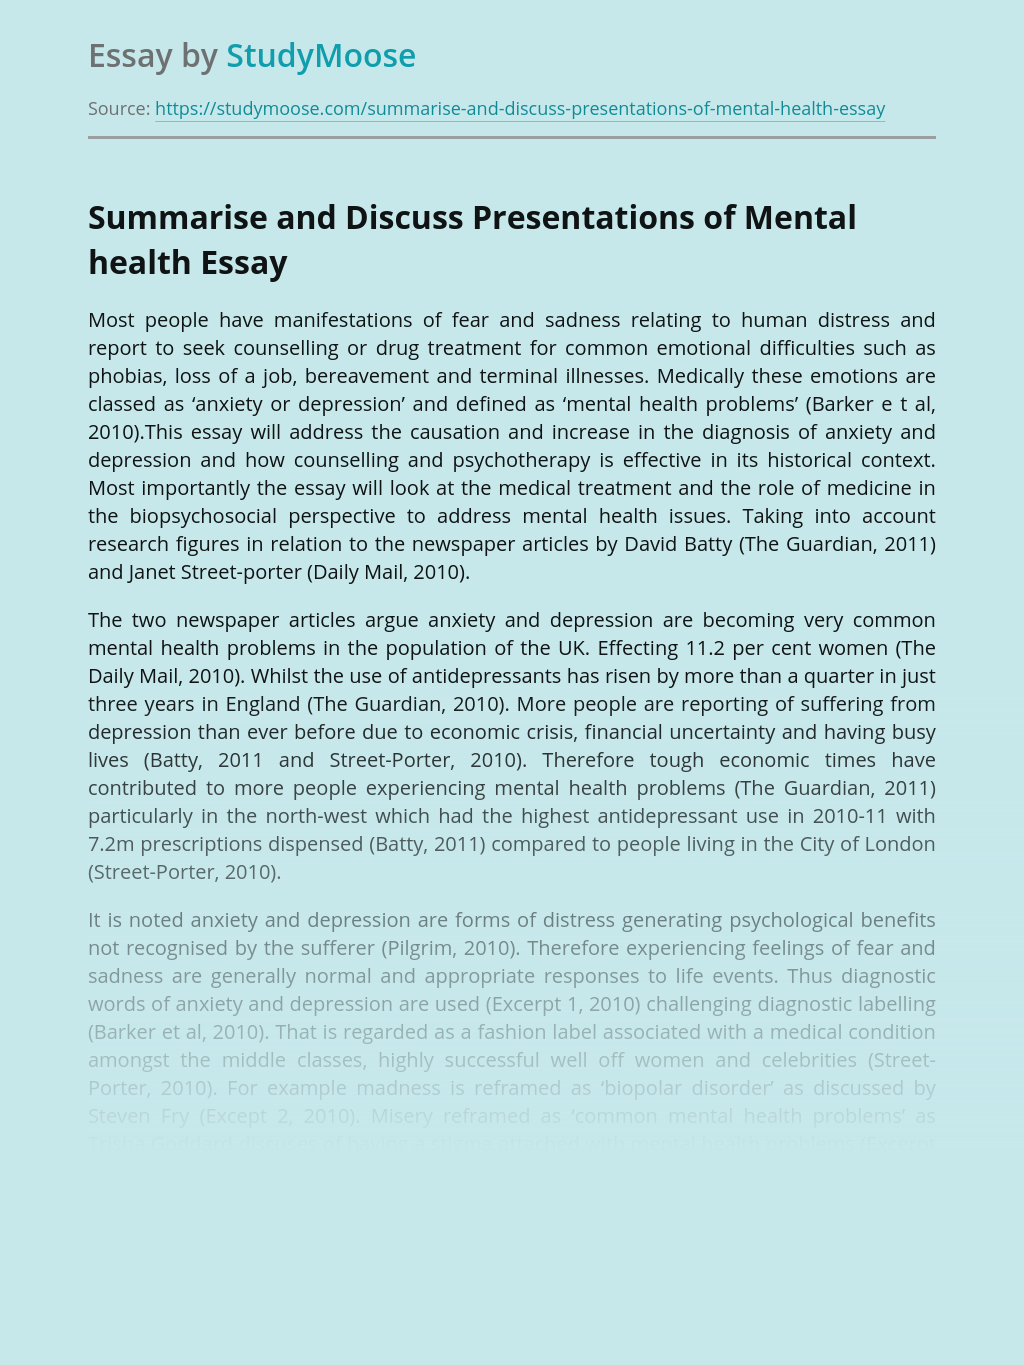 Summarise and Discuss Presentations of Mental health